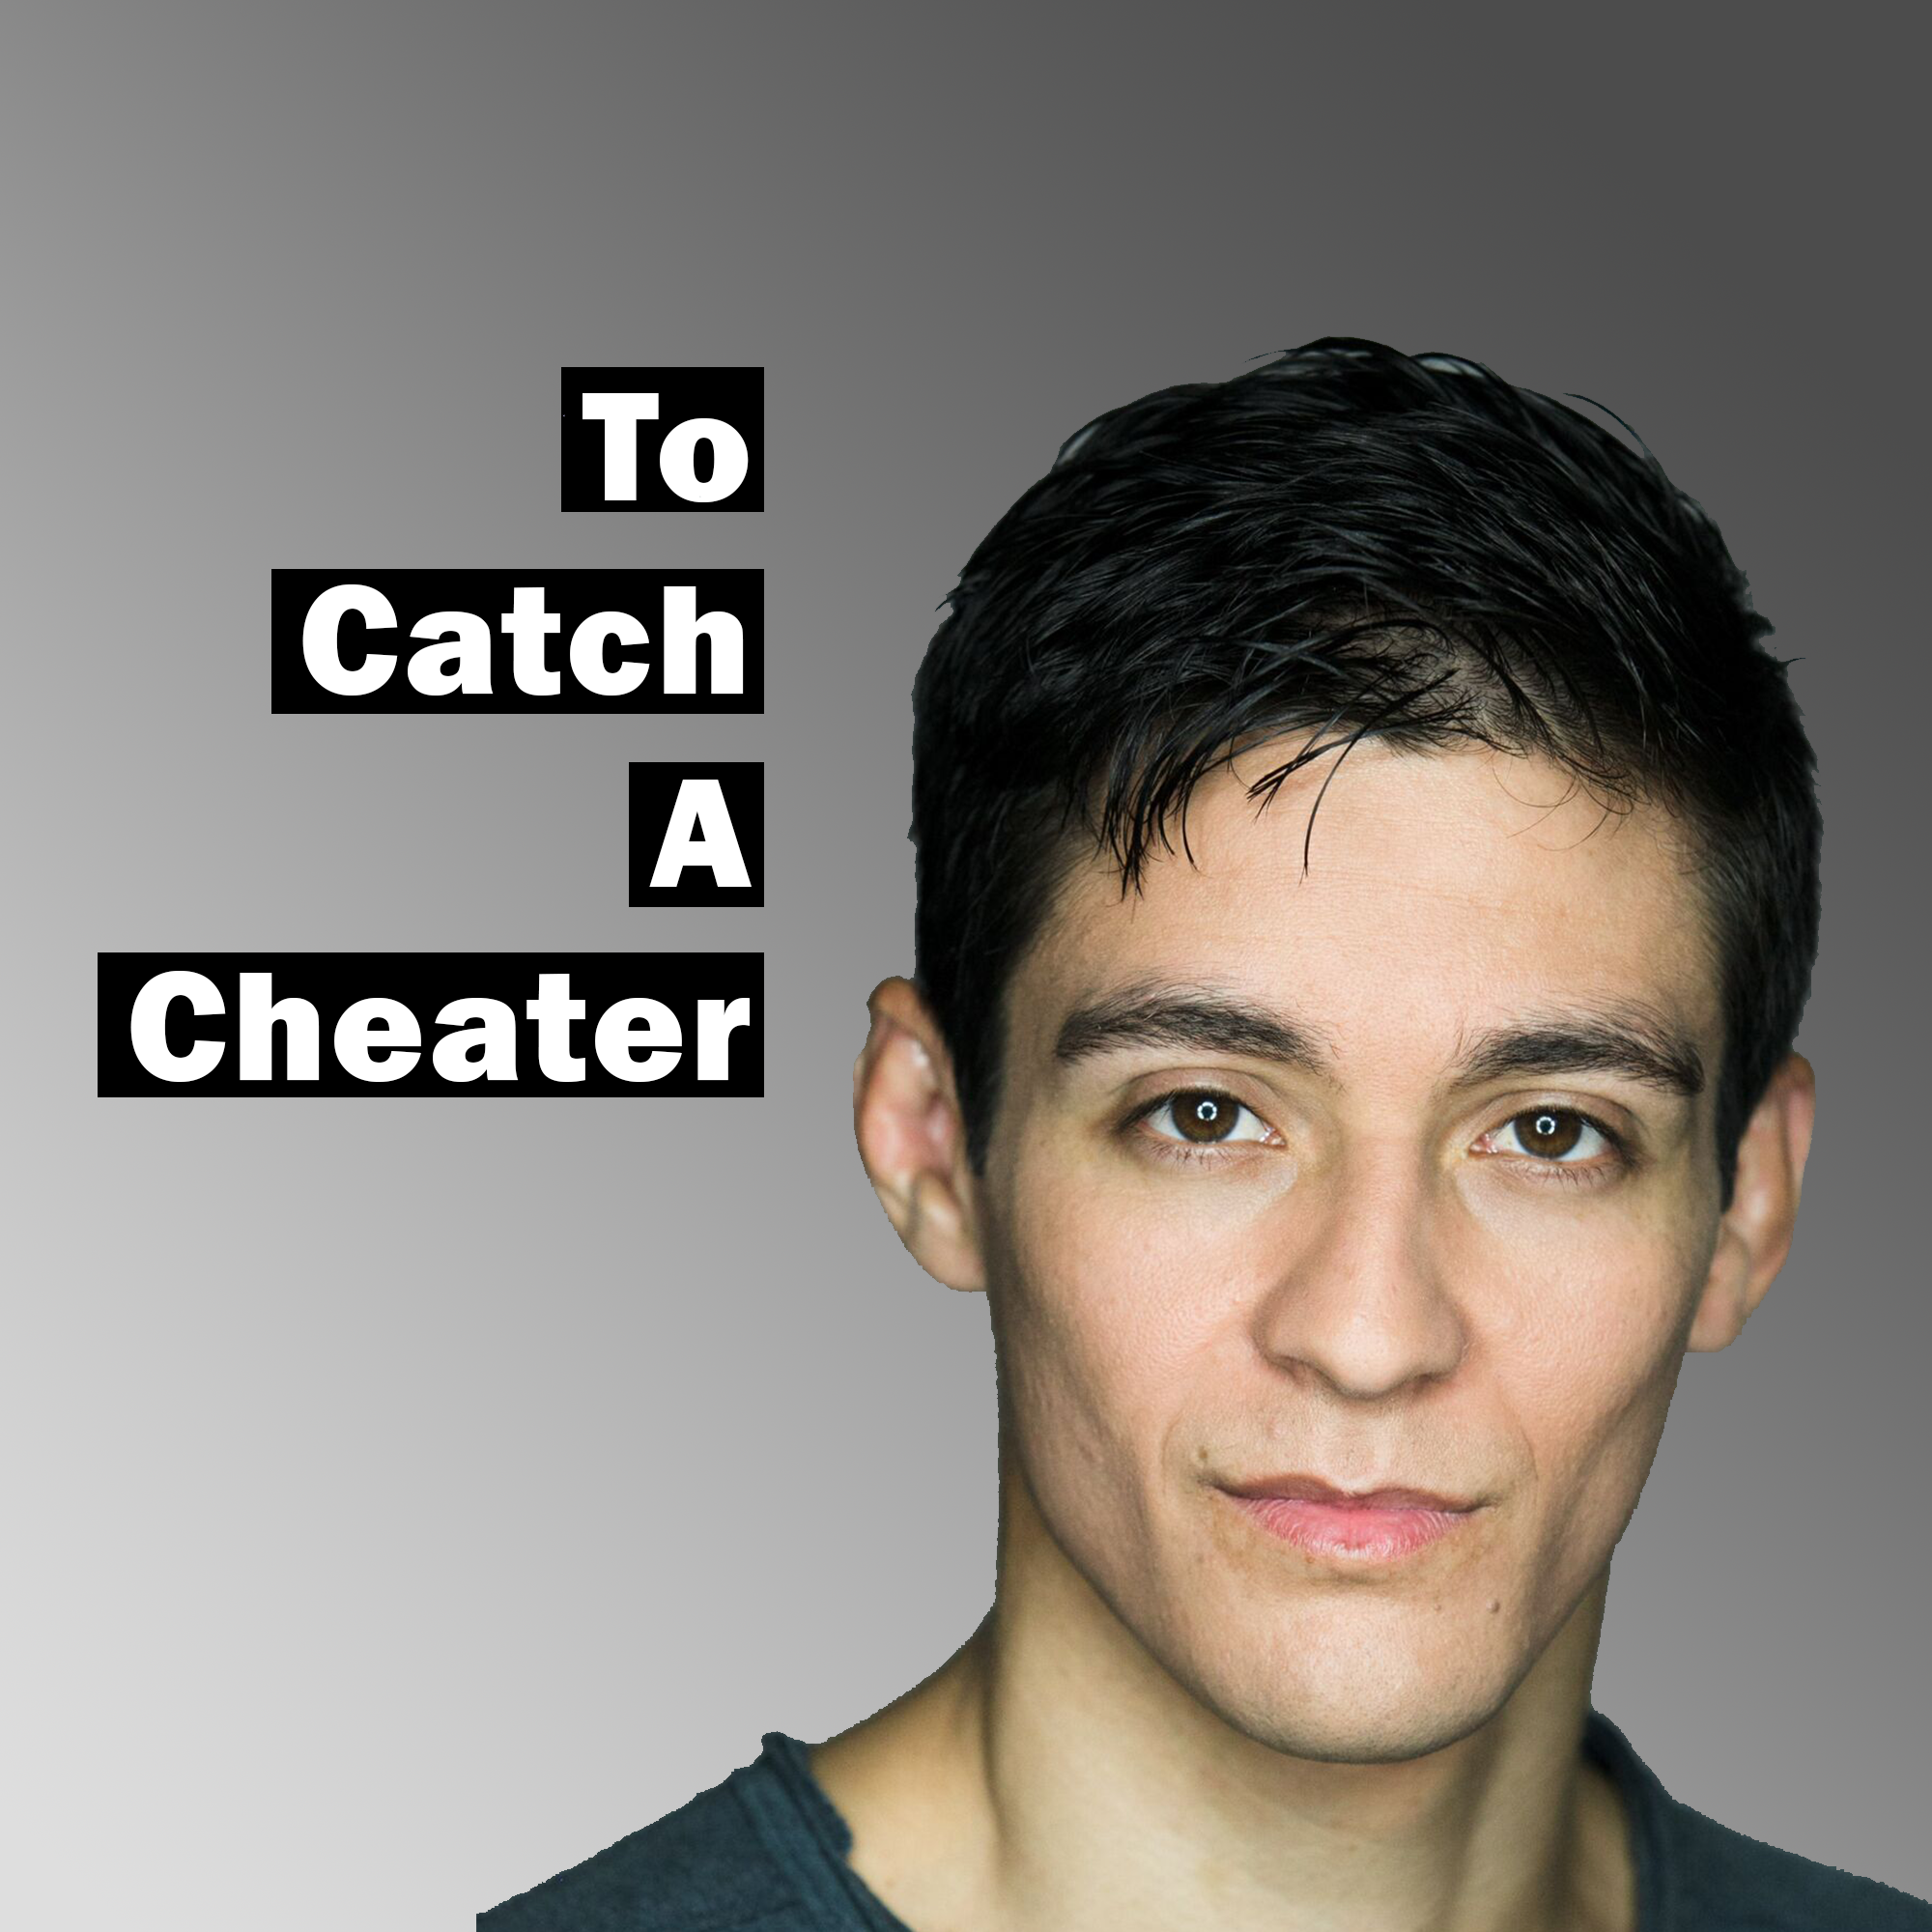 To Catch a Cheater